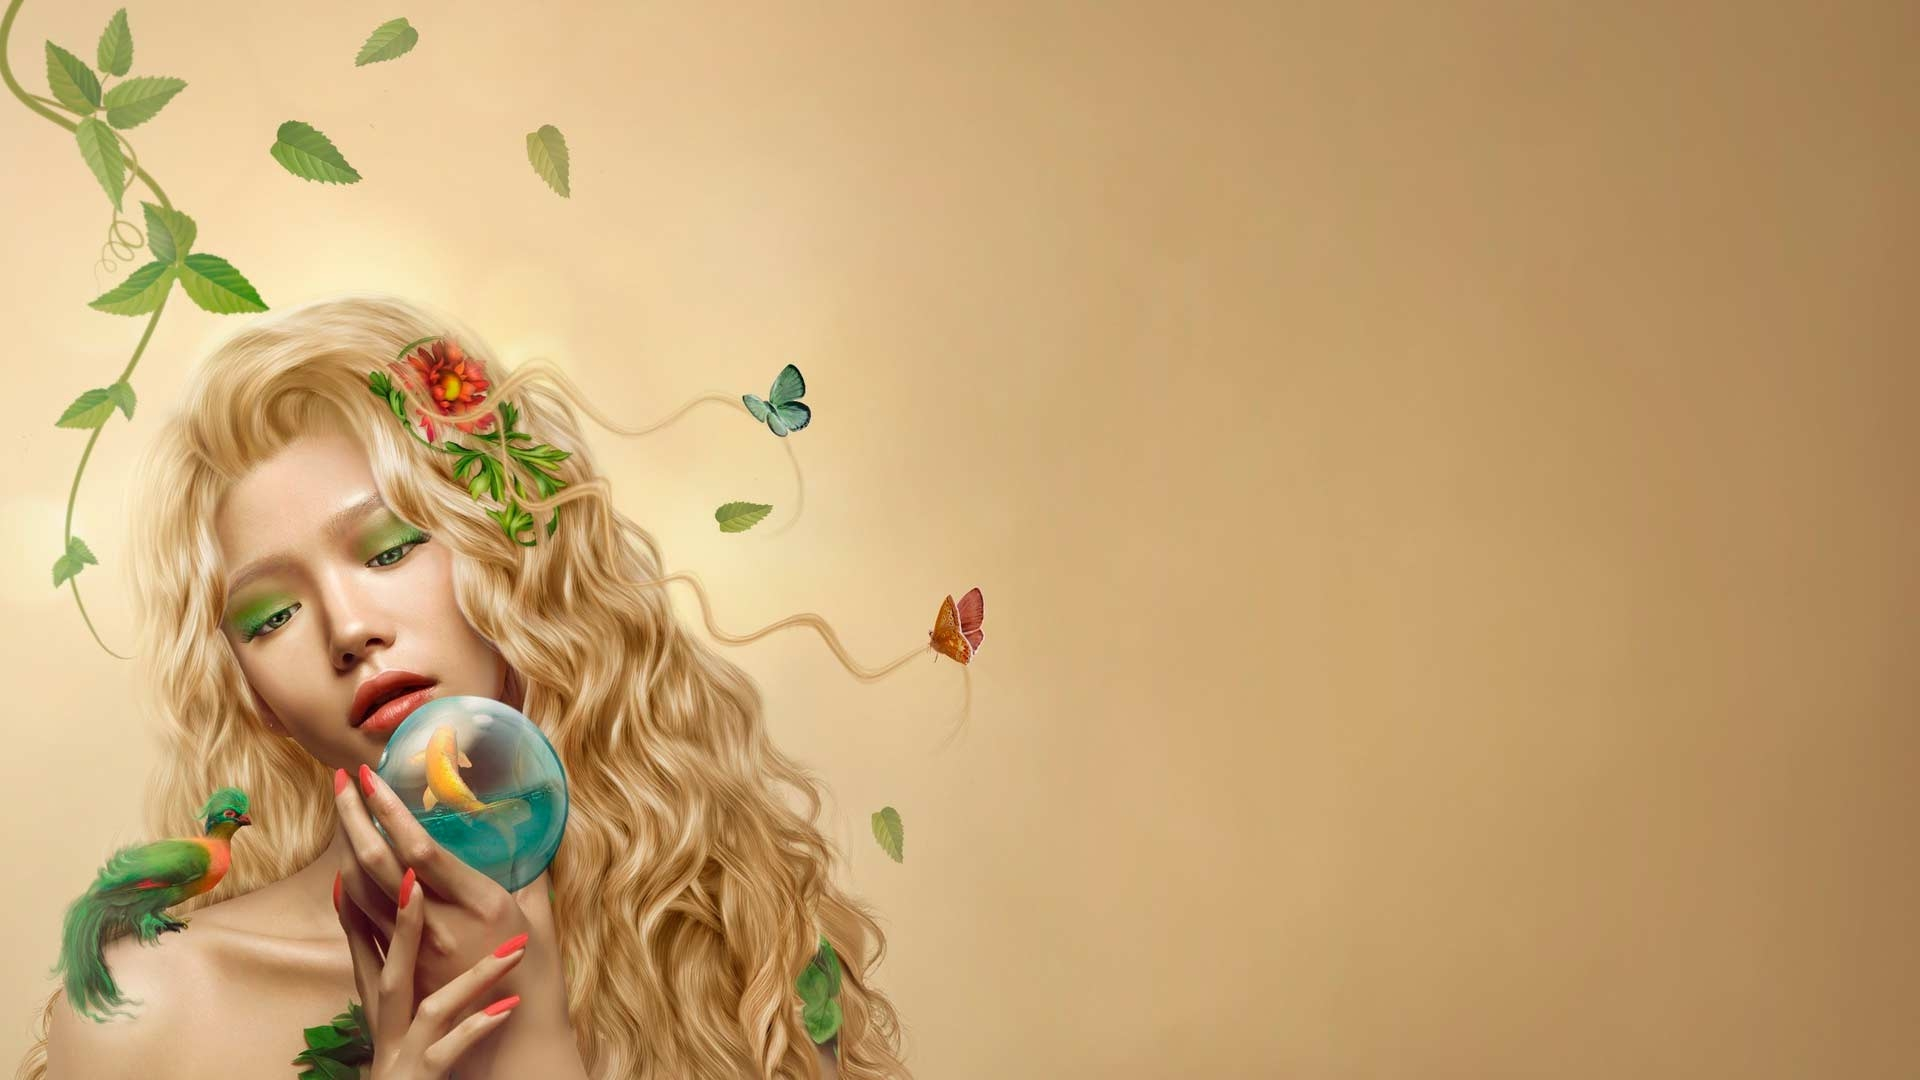 girl-ringlets-butterflies-small-fish-sphere-1920x1080